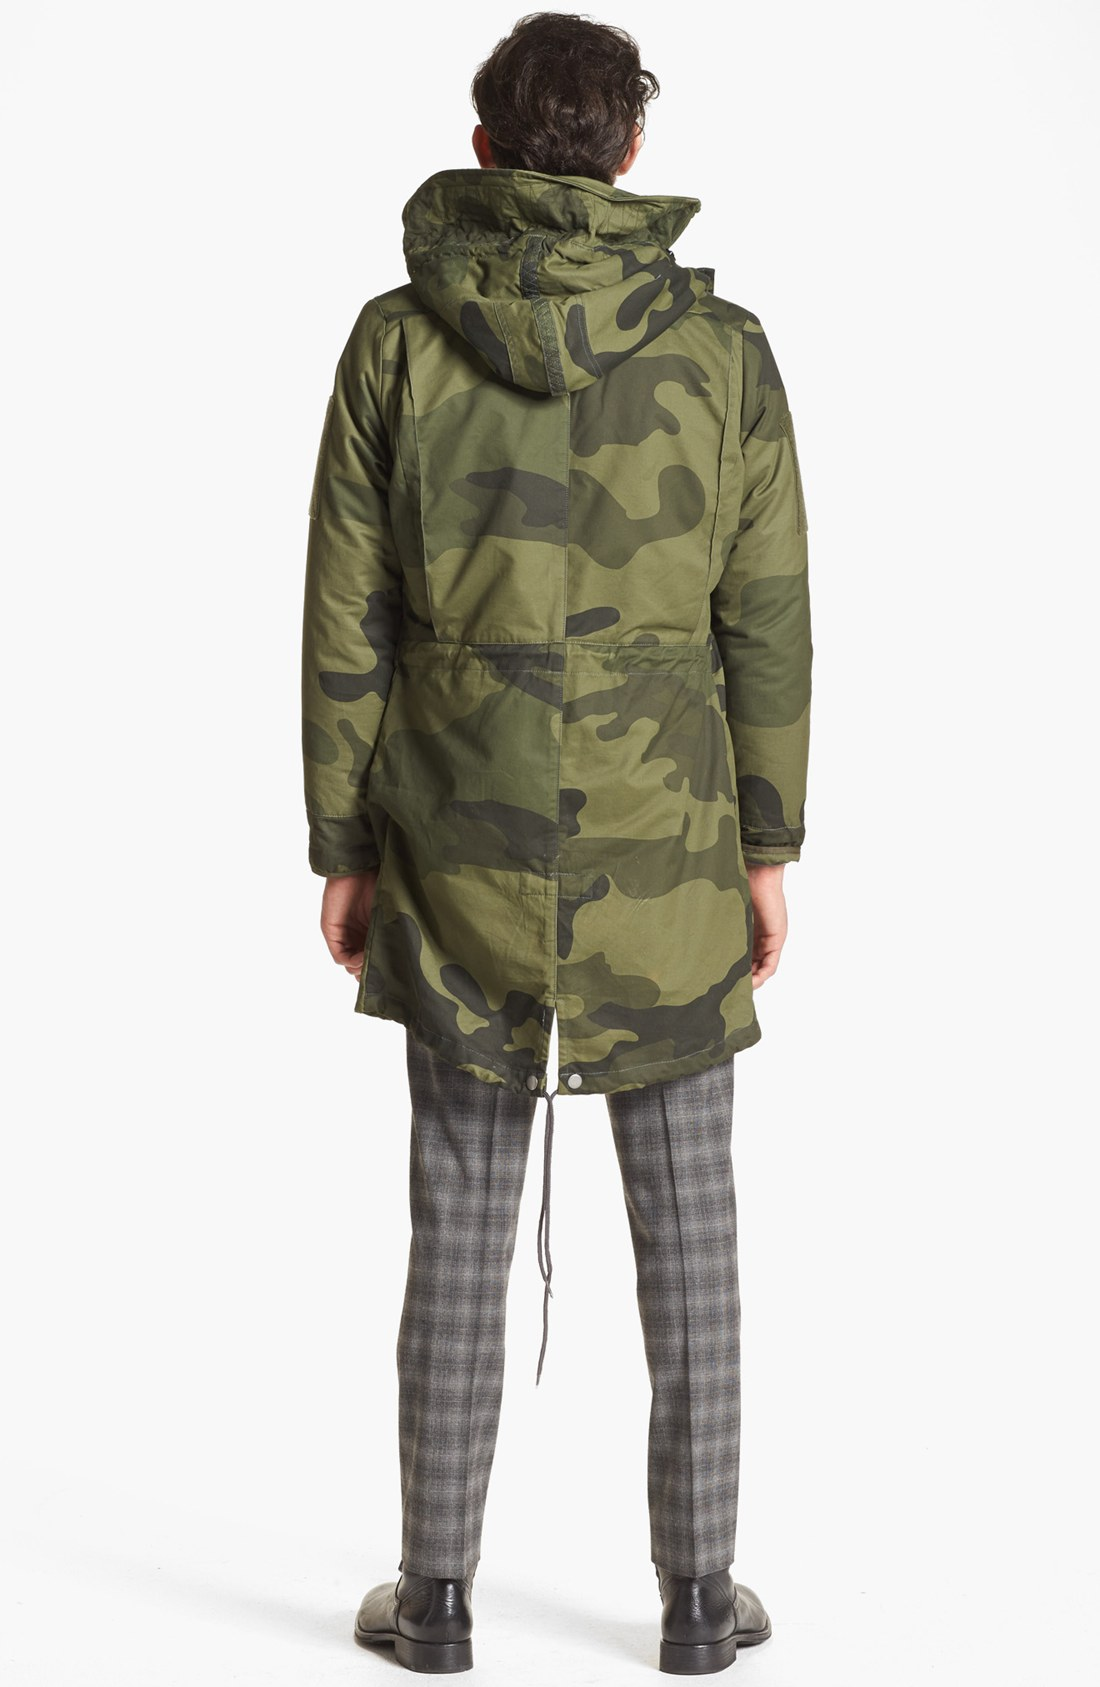 G-star raw Polar Hdd Camo Fishtail Parka in Natural for Men | Lyst